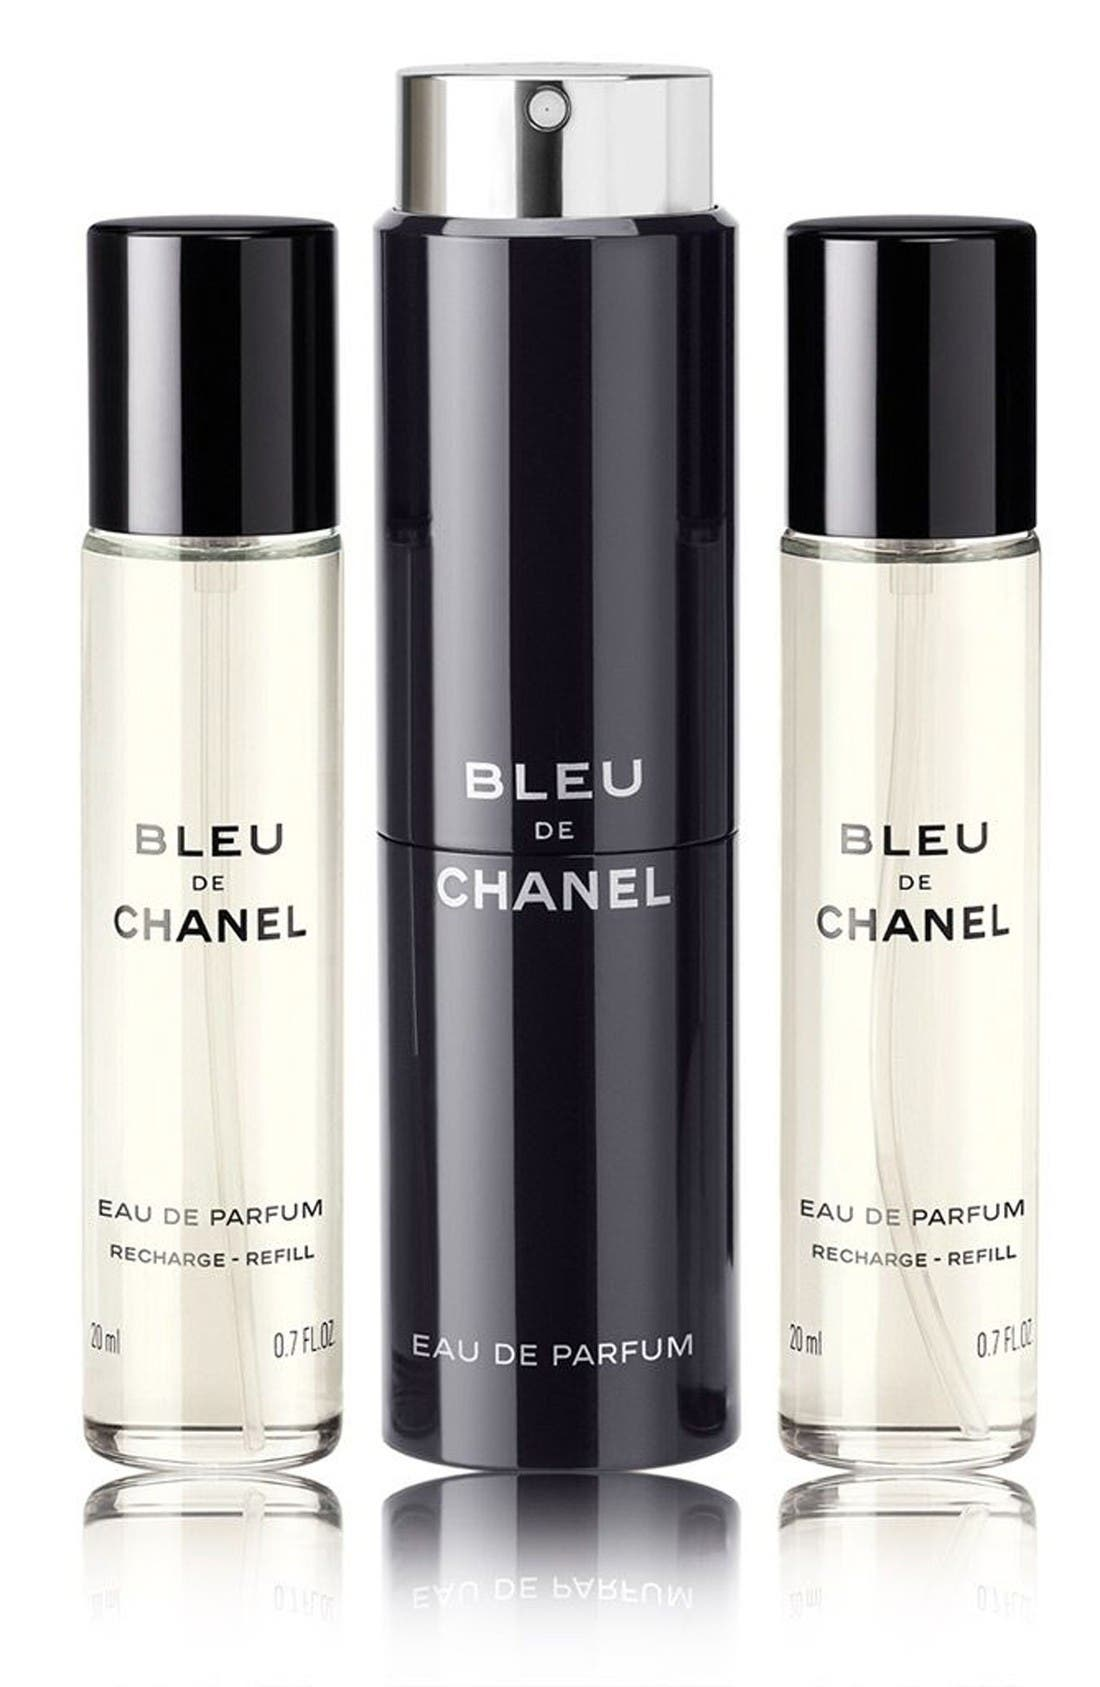 CHANEL BLEU DE CHANEL EAU DE PARFUM POUR HOMME 